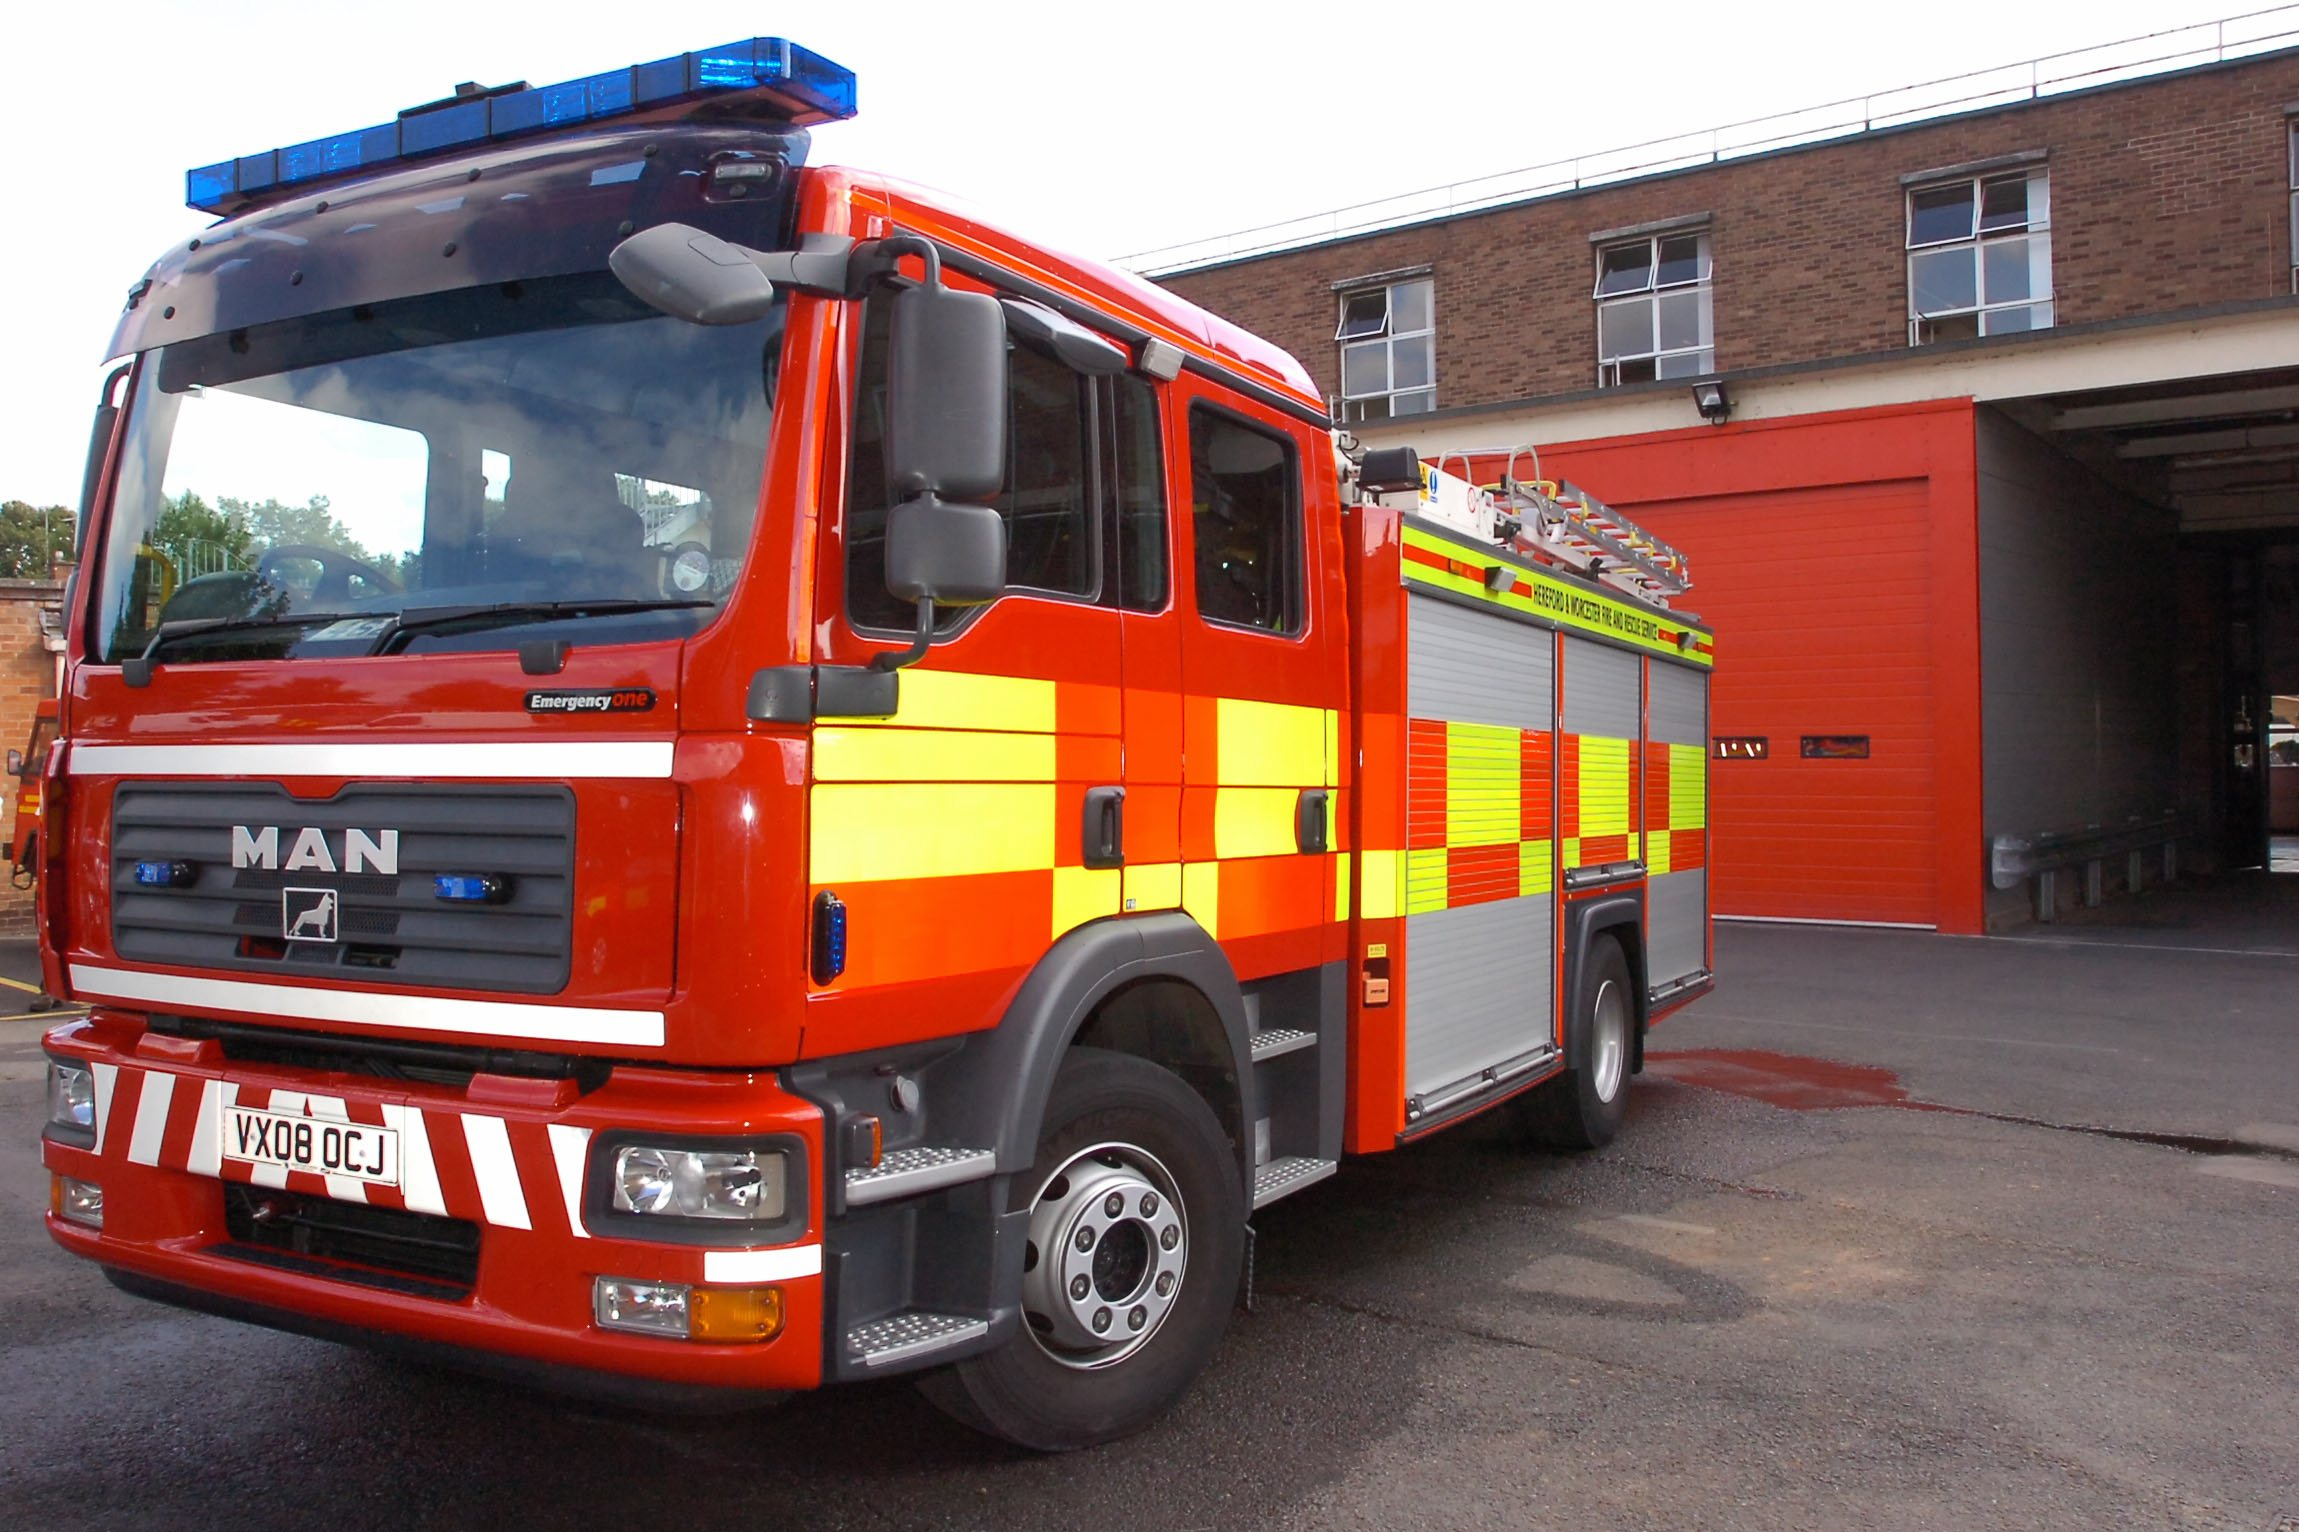 One person rescued in Braintree flat fire